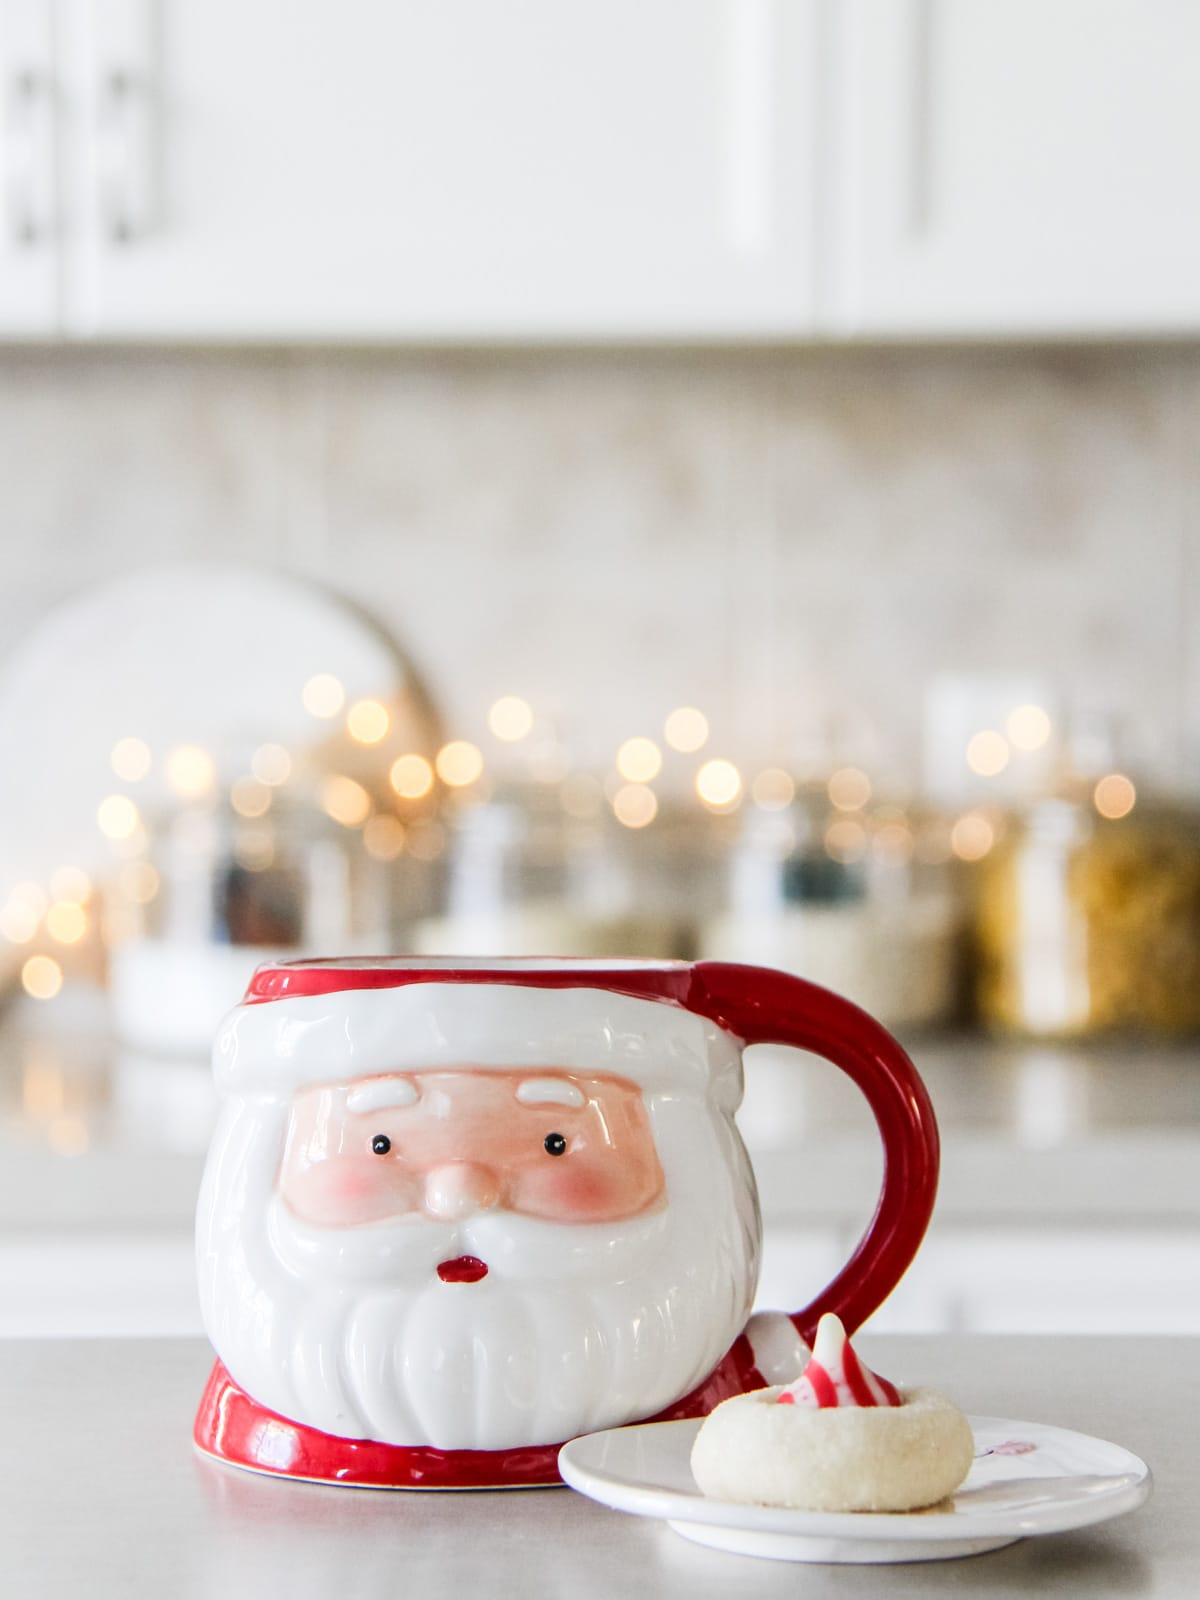 A Santa mug on a kitchen counter with twinkly lights in the background